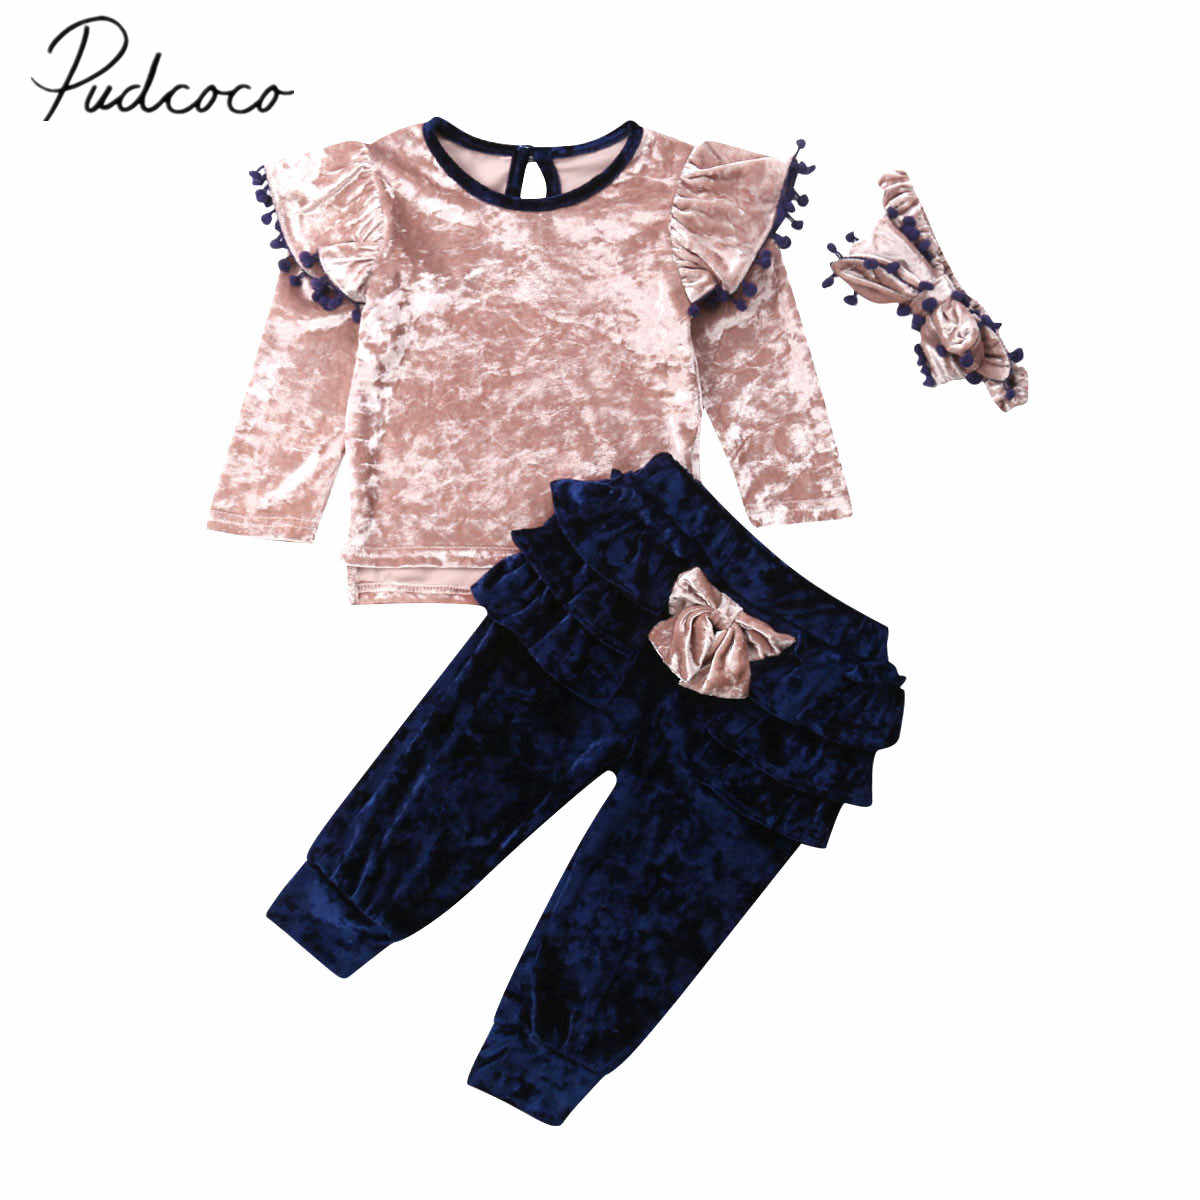 2019 Baby Spring Fall Clothing Toddler Kids Baby Girl Clothes Velvet Ruffle Bow Tops Shirts Long Pants 3Pcs Outfit Set 1-6Y